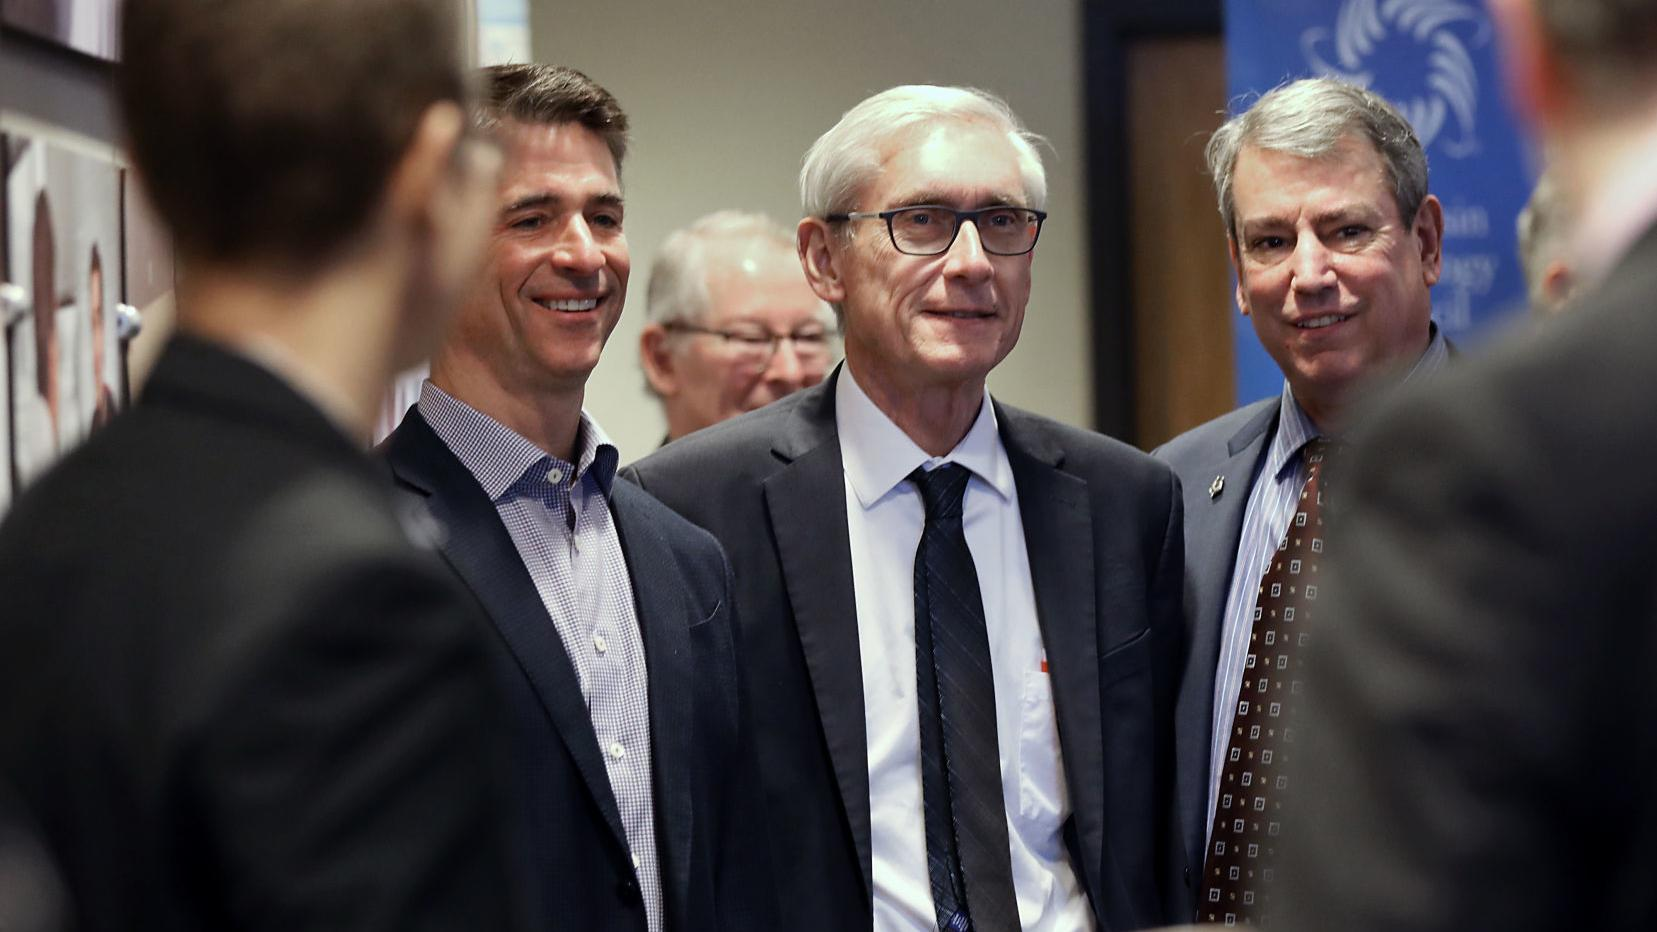 Tony Evers: Expand economic development to include affordable worker housing